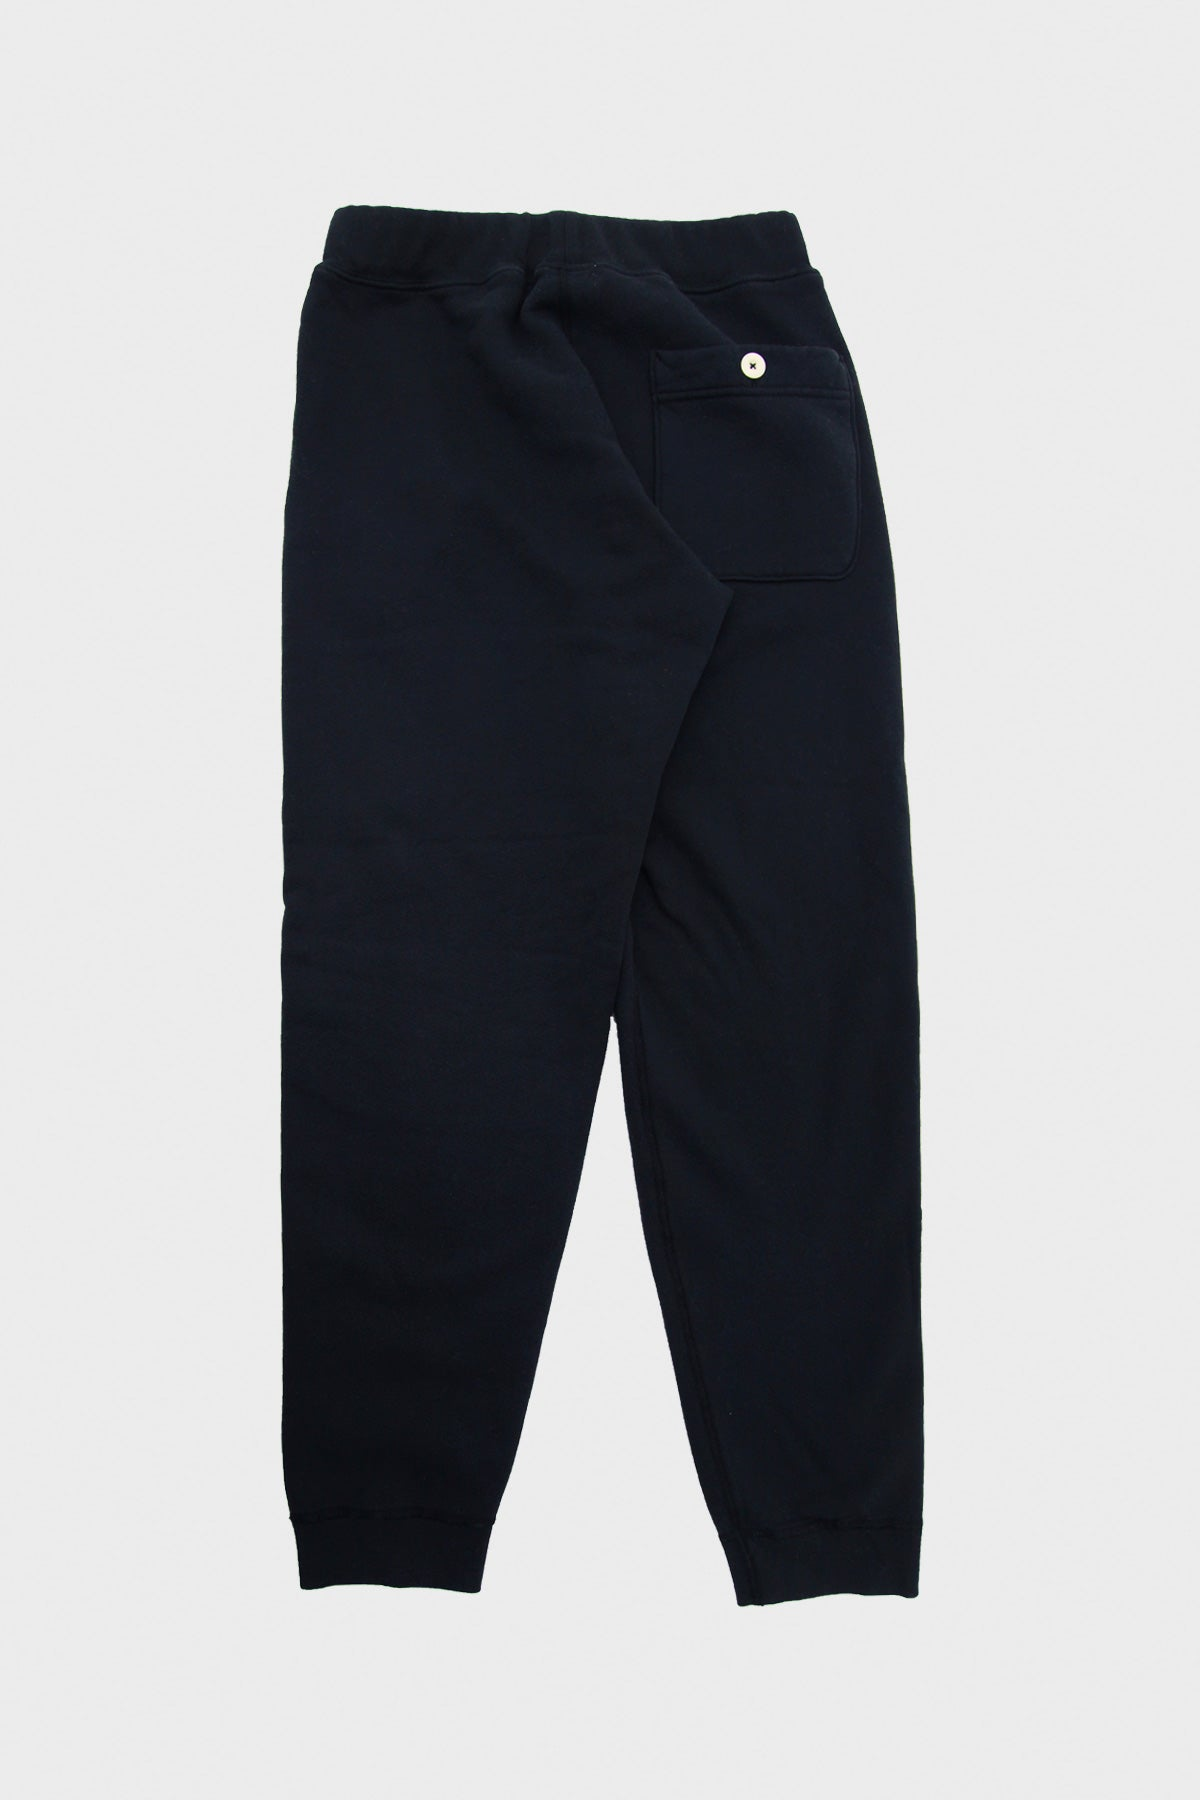 Velva Sheen - Viper Sweat Pants - Black - Canoe Club